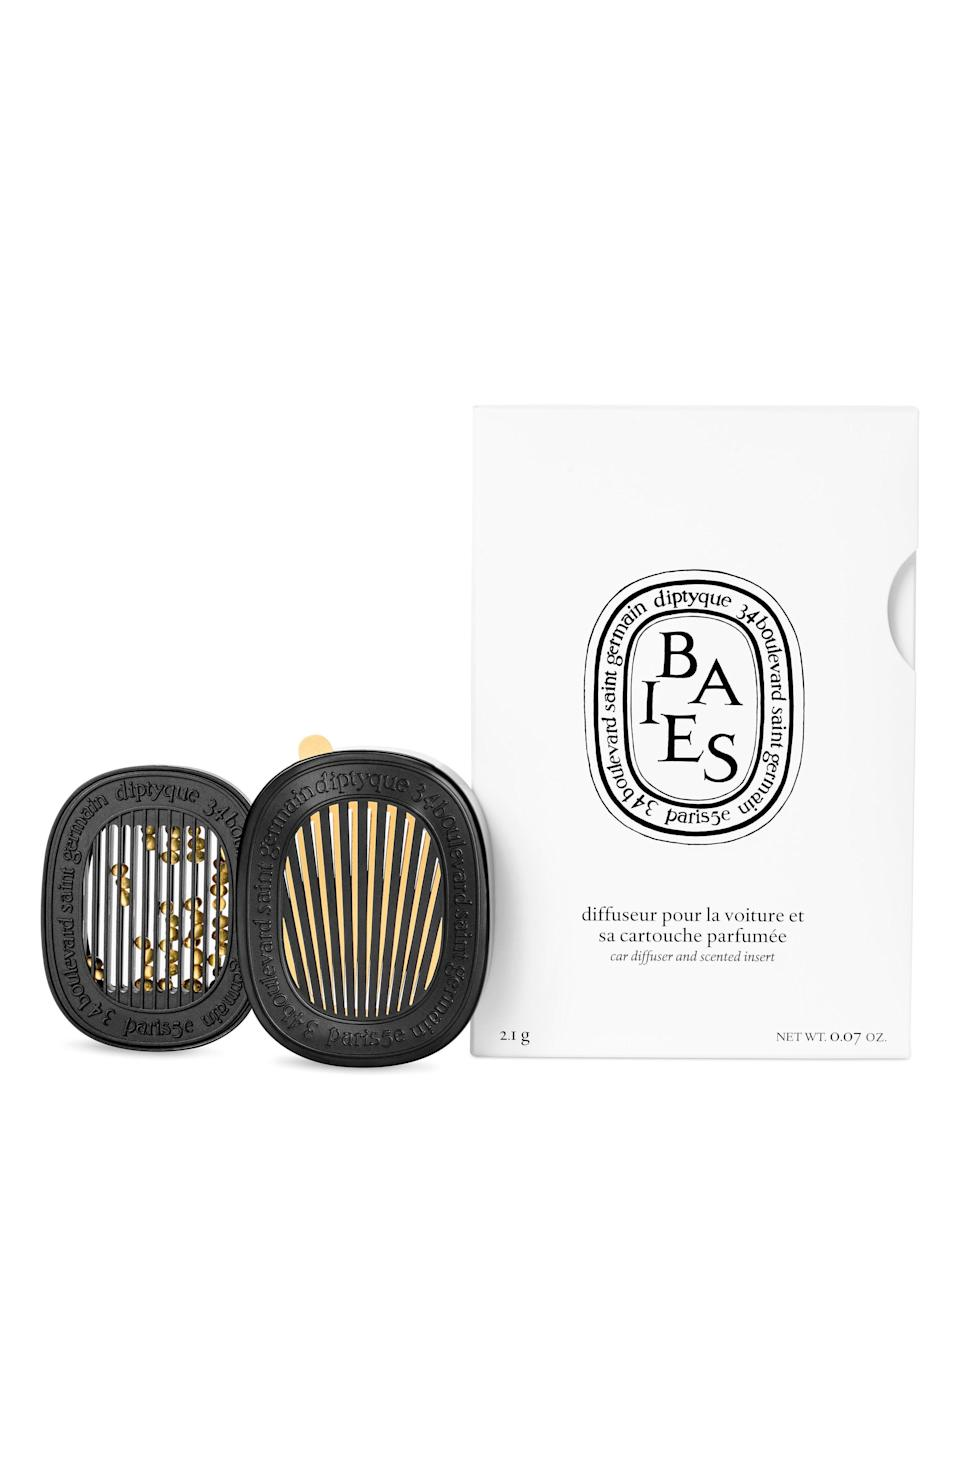 """<p><strong>Diptyque </strong></p><p>nordstrom.com</p><p><strong>$108.00</strong></p><p><a href=""""https://go.redirectingat.com?id=74968X1596630&url=https%3A%2F%2Fwww.nordstrom.com%2Fs%2Fdiptyque-baies-car-diffuser-insert%2F5385238&sref=https%3A%2F%2Fwww.oprahdaily.com%2Flife%2Fg36231053%2Fbest-essential-oil-diffusers%2F"""" rel=""""nofollow noopener"""" target=""""_blank"""" data-ylk=""""slk:SHOP NOW"""" class=""""link rapid-noclick-resp"""">SHOP NOW</a></p><p>For an ultra-luxe option to the nostalgic pine tree air freshener, affix this fruity-scented Diptique diffuser to your car's vent. </p>"""